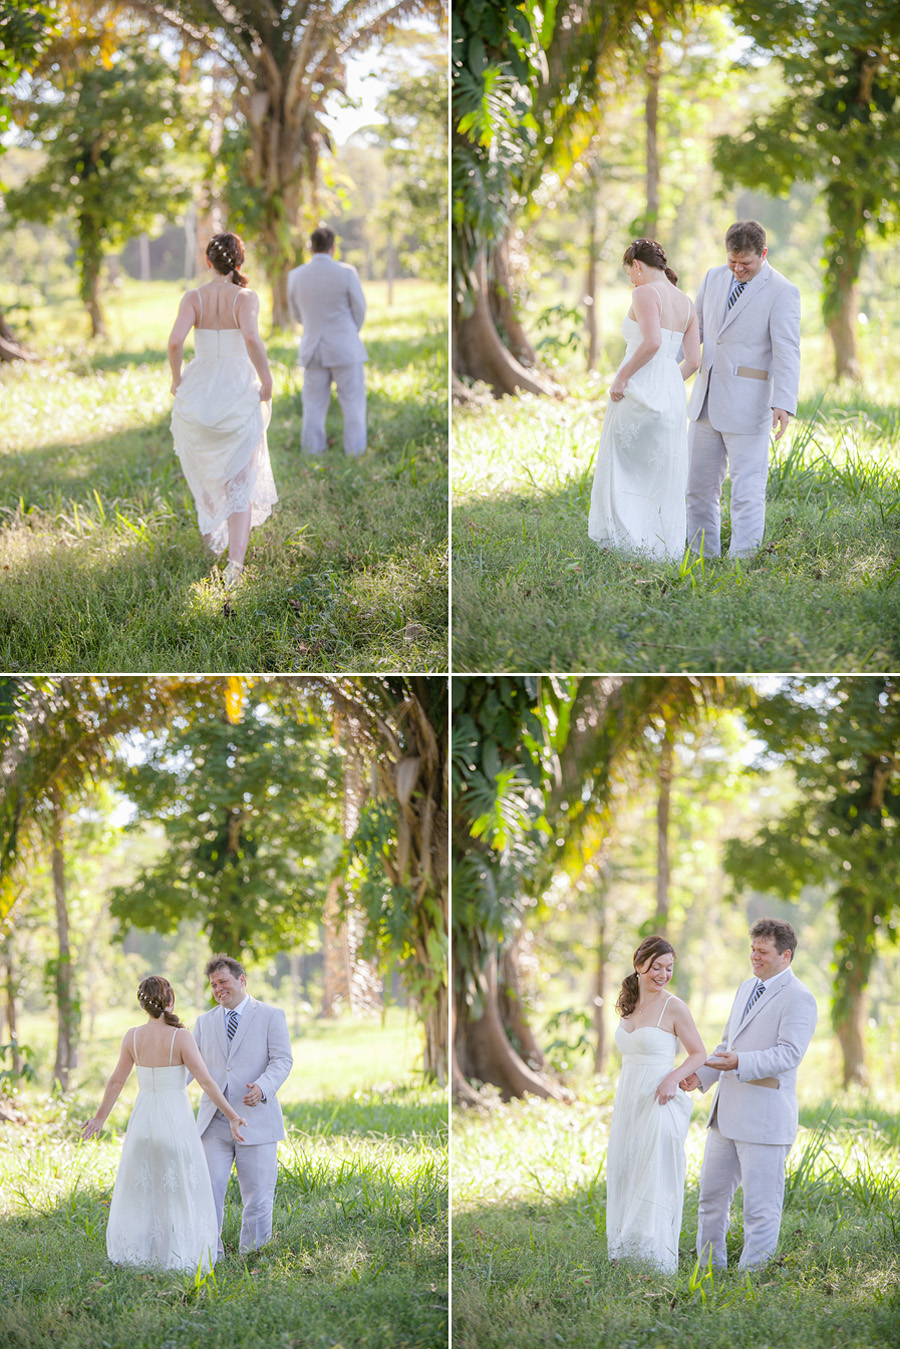 Belcampo Belize Wedding Photography-39.jpg